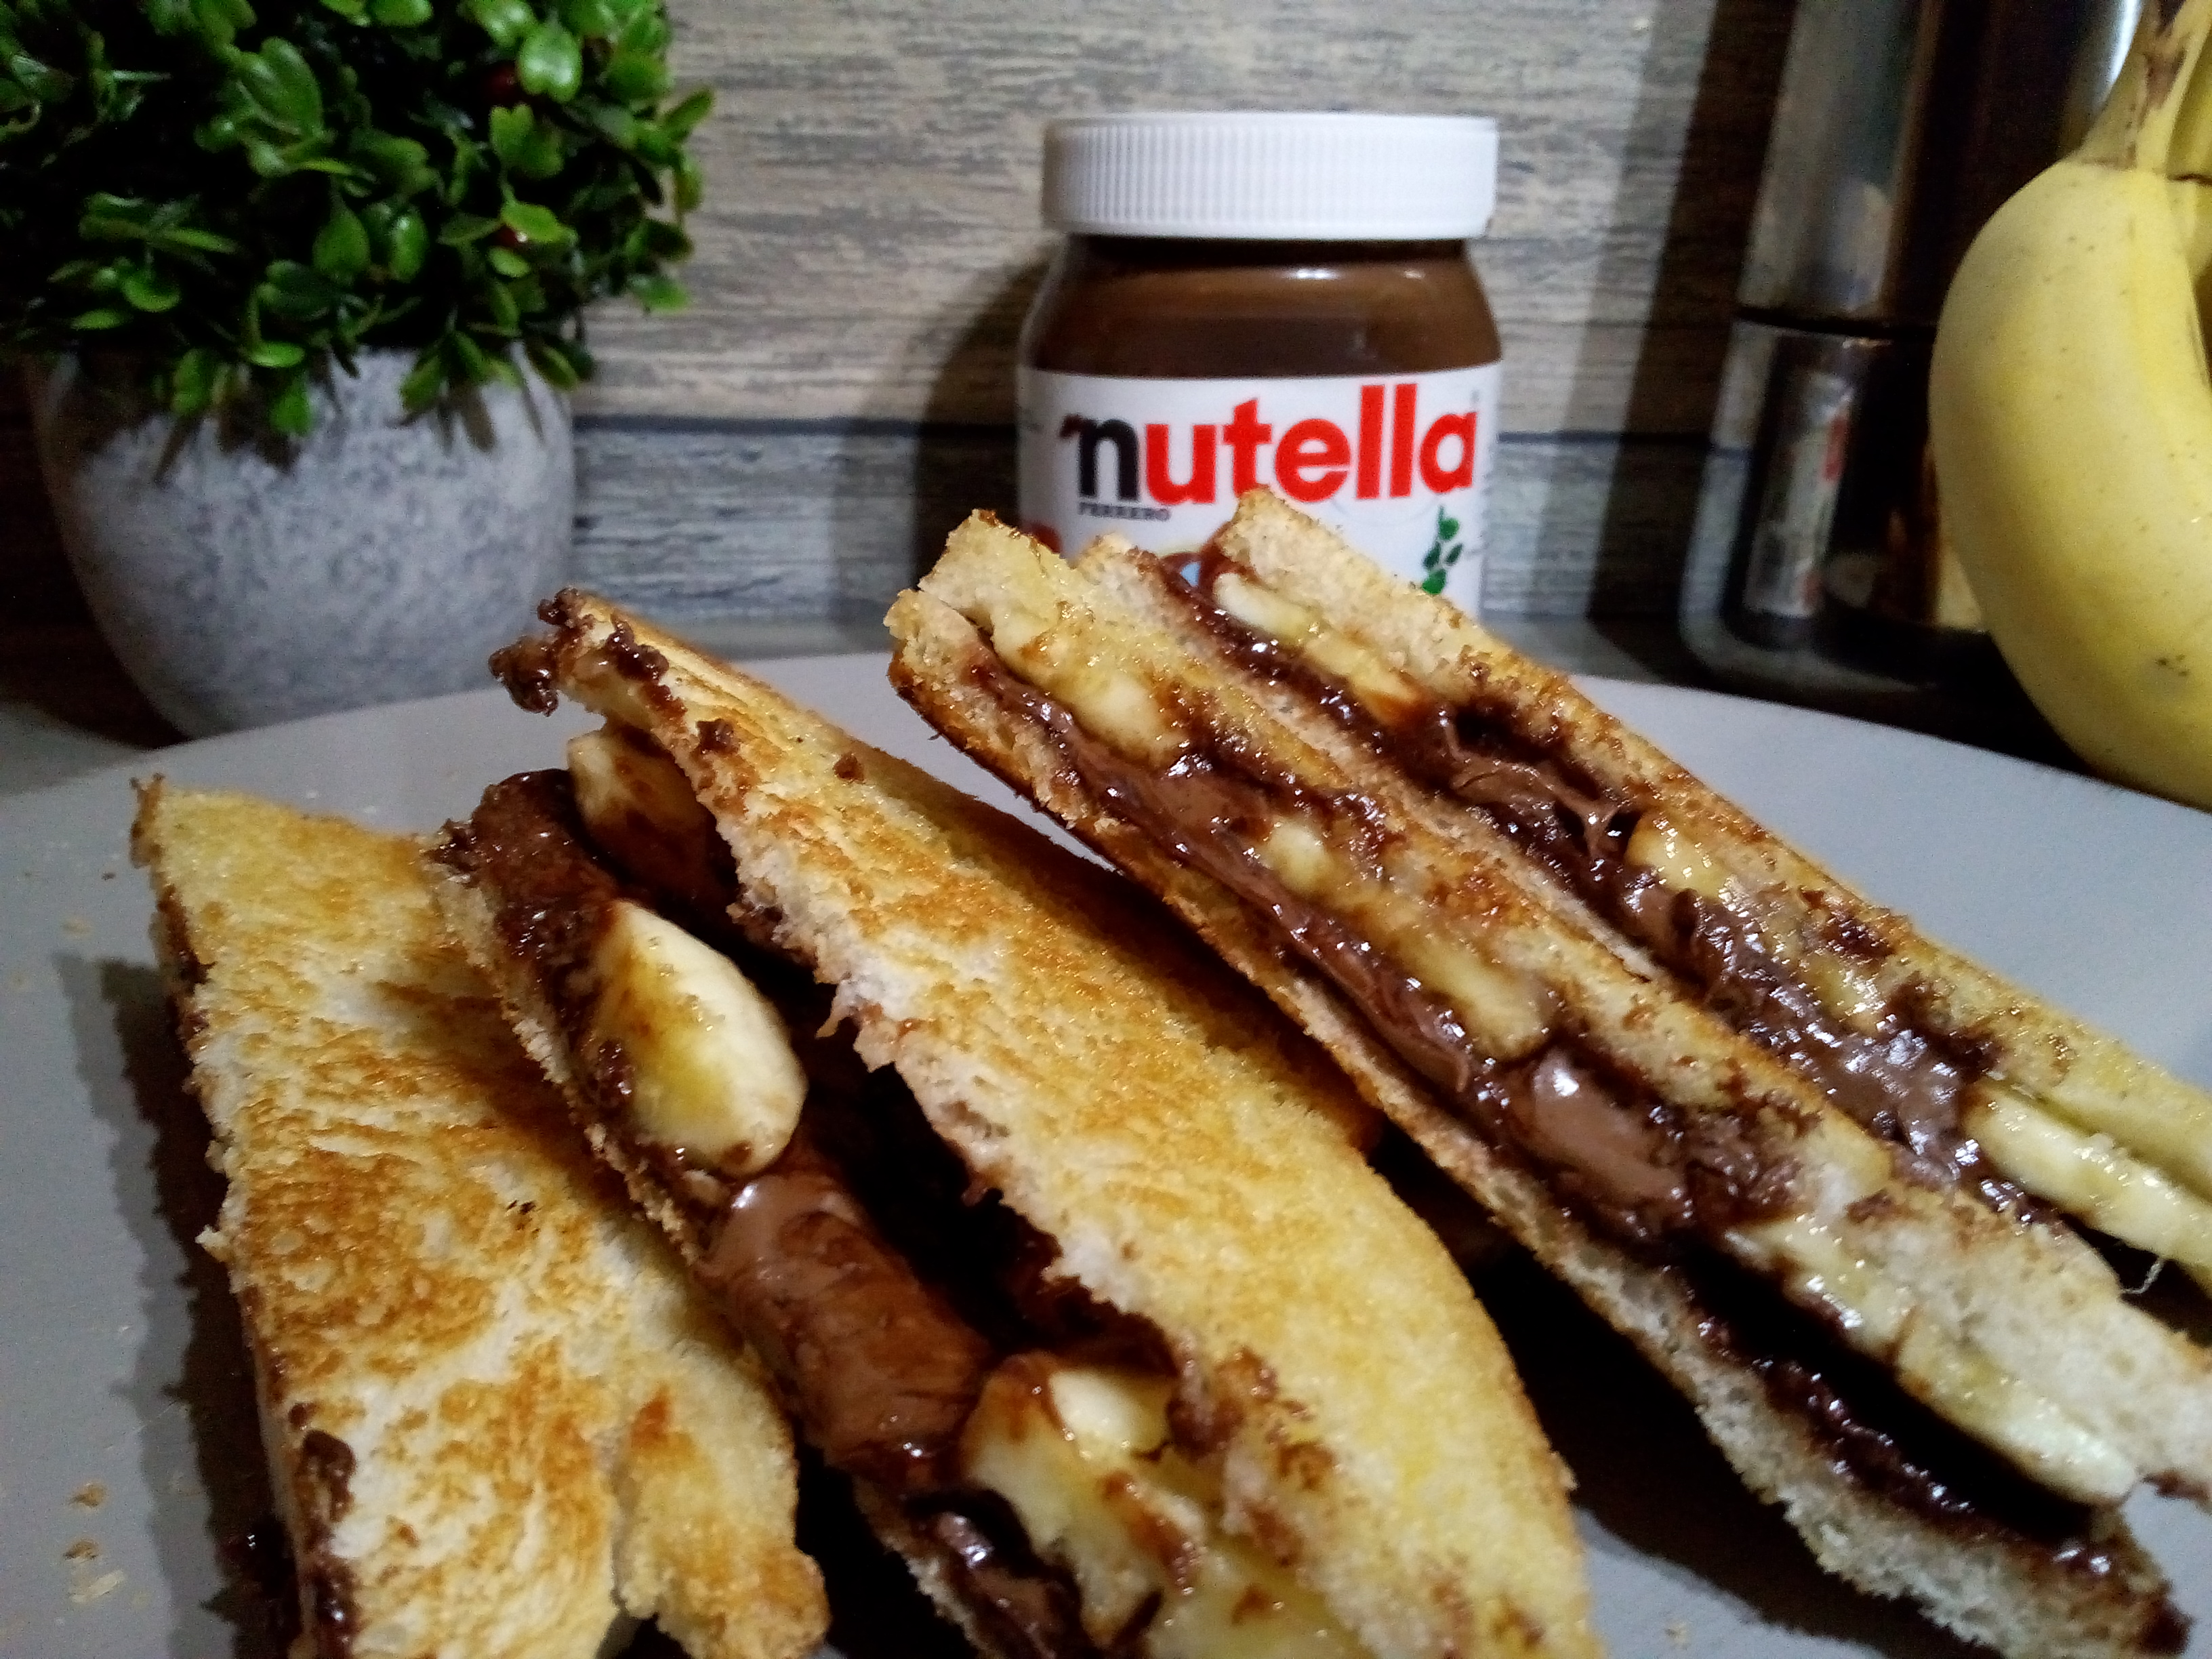 Nutella and banana grilled sandwich